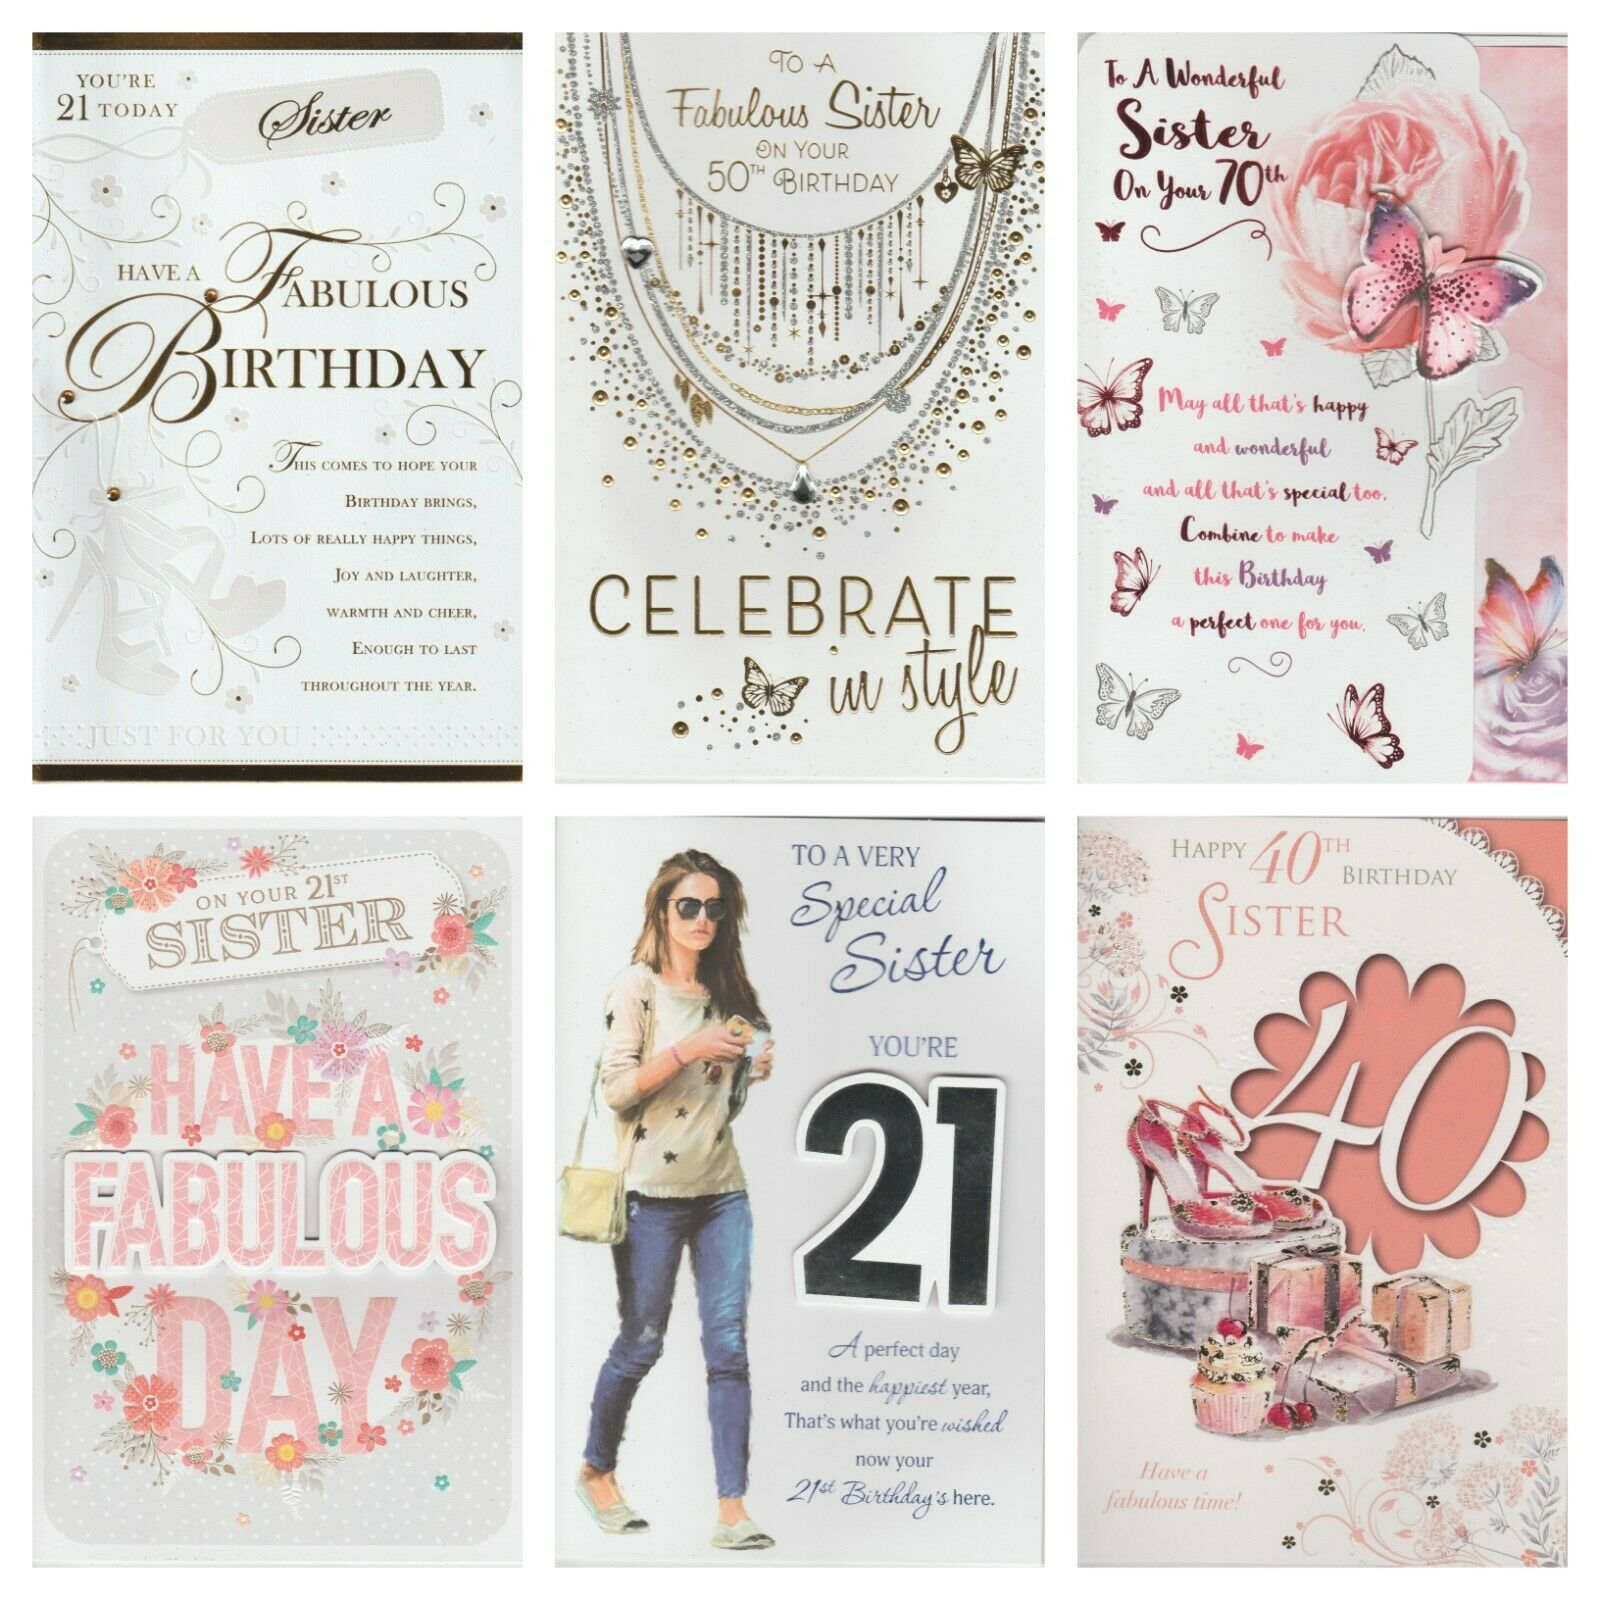 Sister 60th 70th Birthday Card Happy 1 Of 1FREE Shipping See More